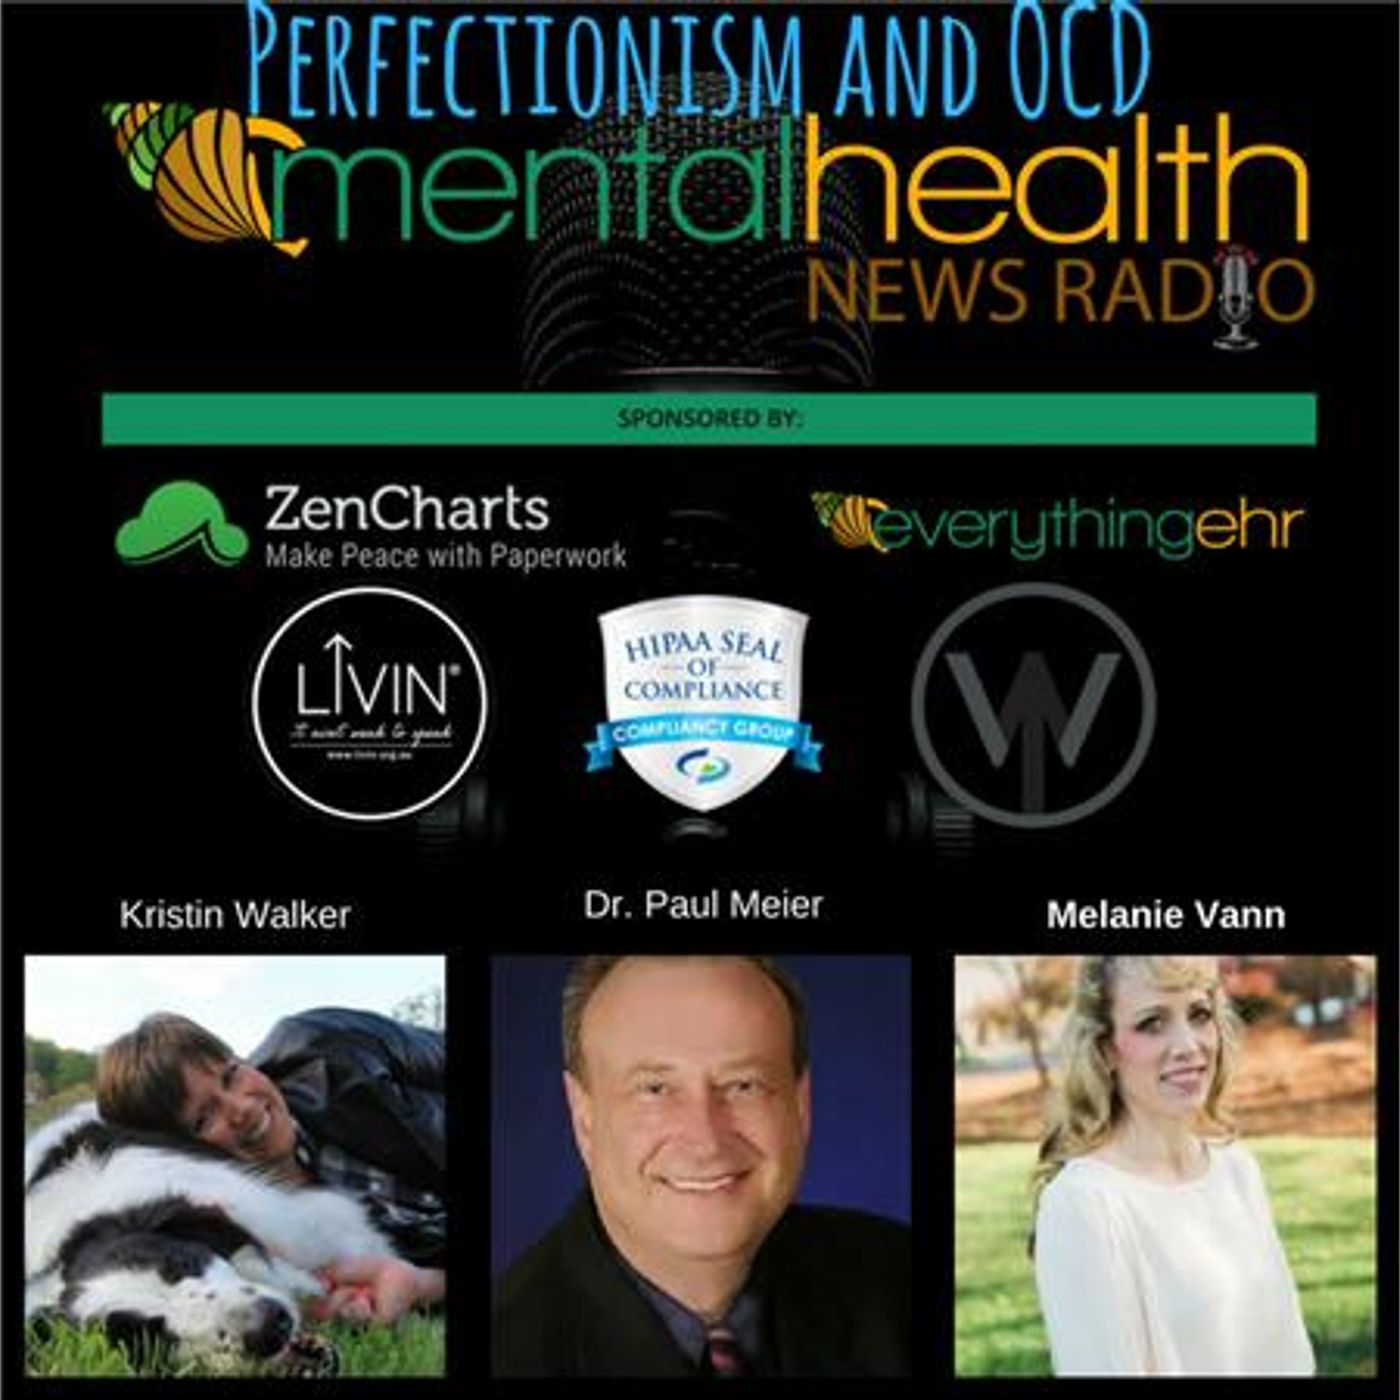 Mental Health News Radio - Dr. Paul Meier Round Table Discussions on Perfectionism and OCD